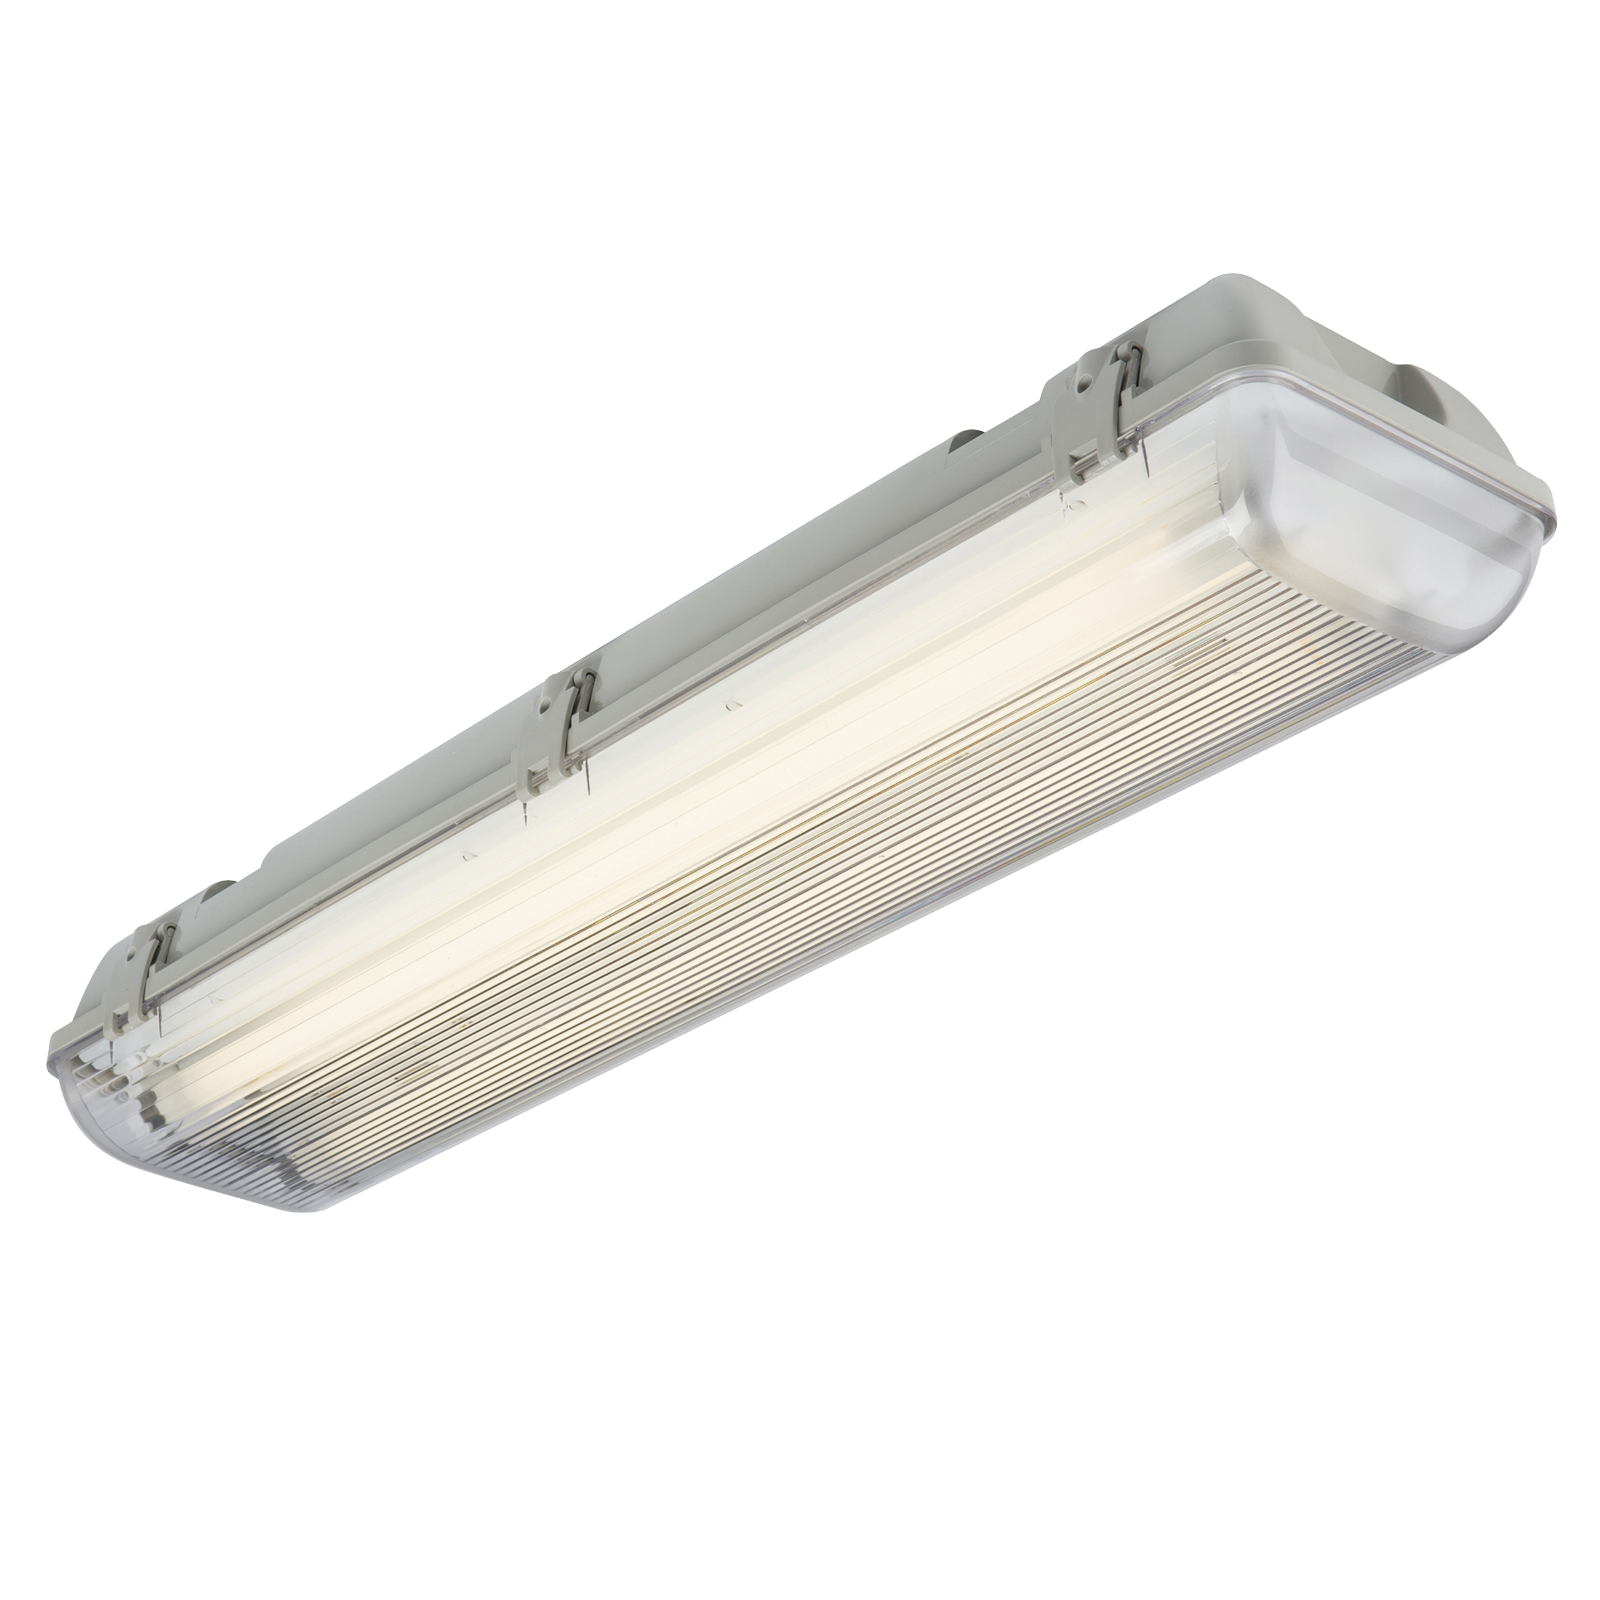 240V IP65 2x36W HF Twin Non-Corrosive Emergency Fluorescent Fitting